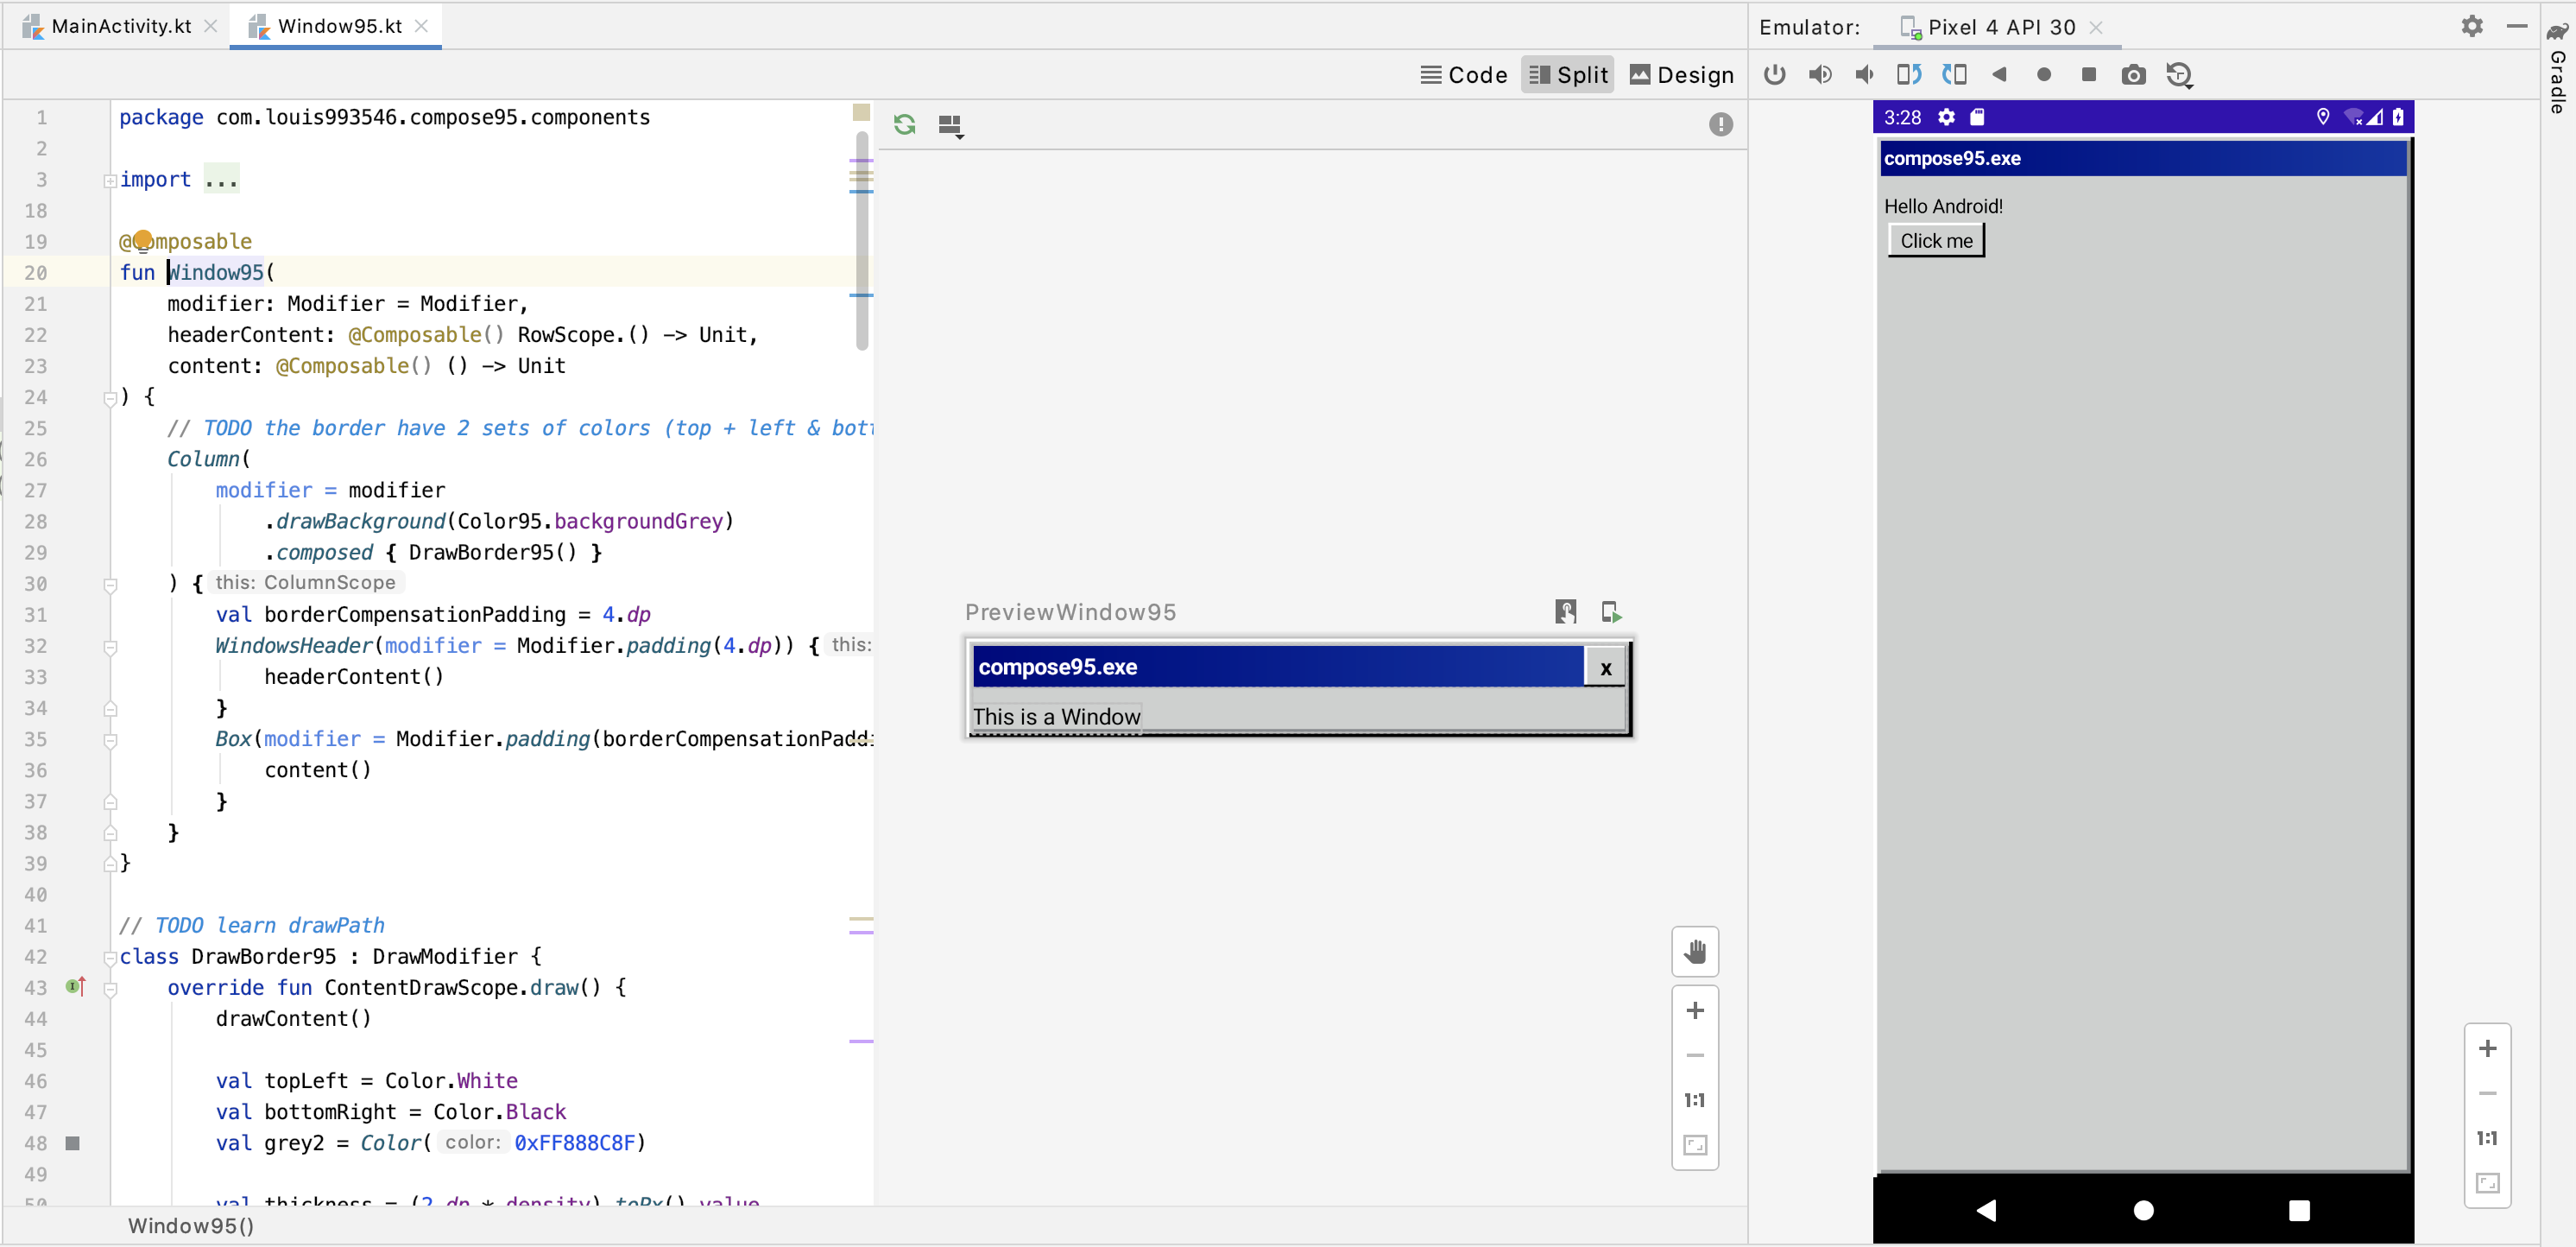 Screenshot of Android Studio, which has code of Window95, Preview of Window95, and an emulator showing what it looks like